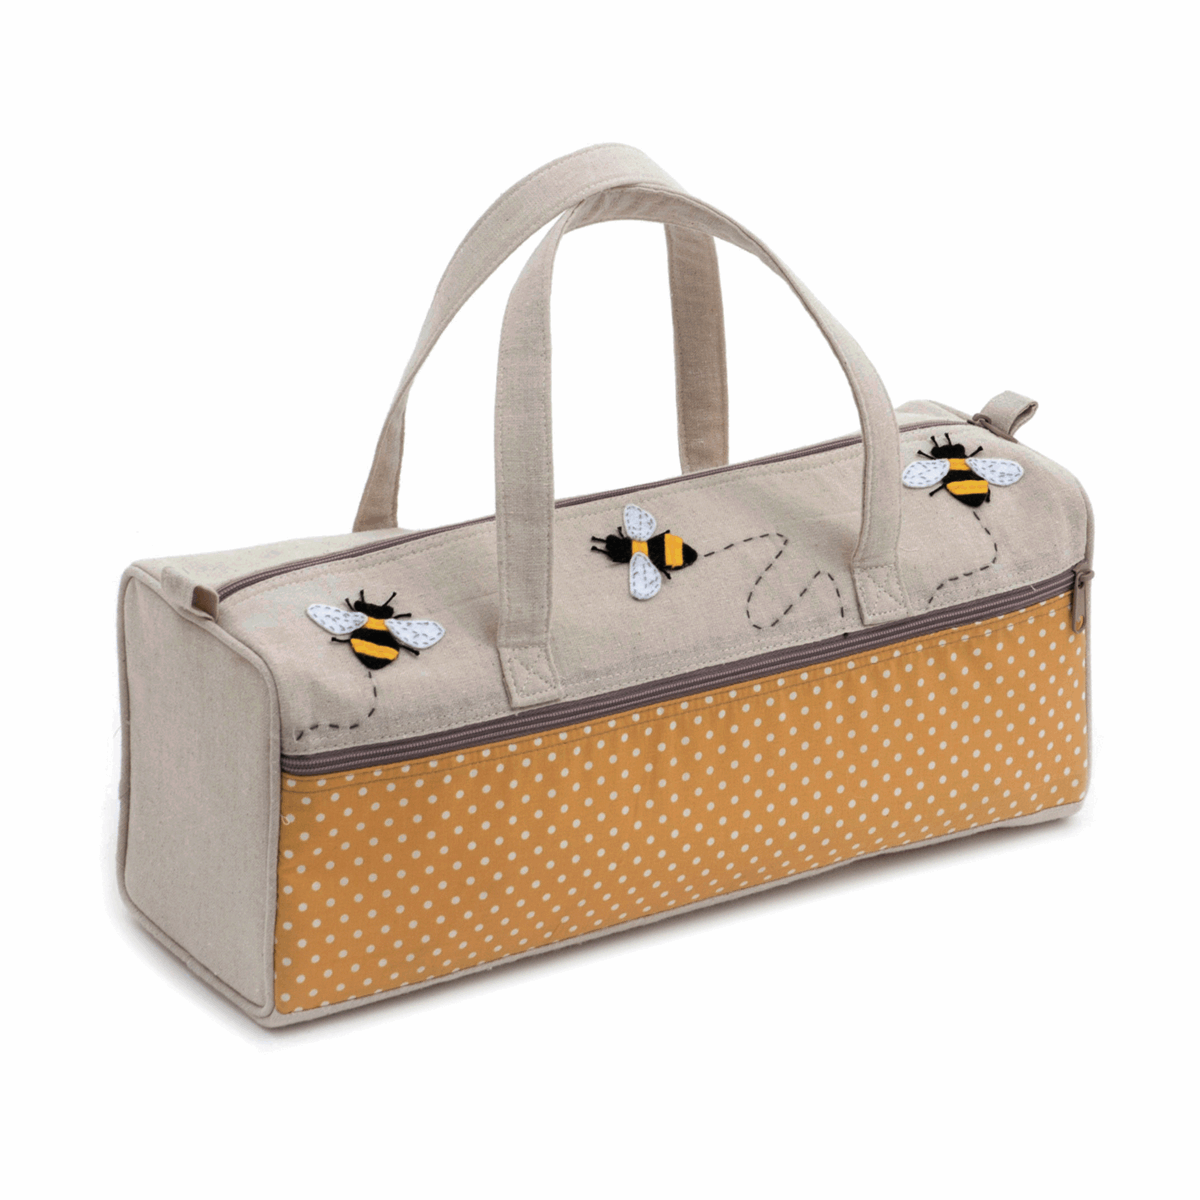 Bumble Bee Applique Knitting Bag